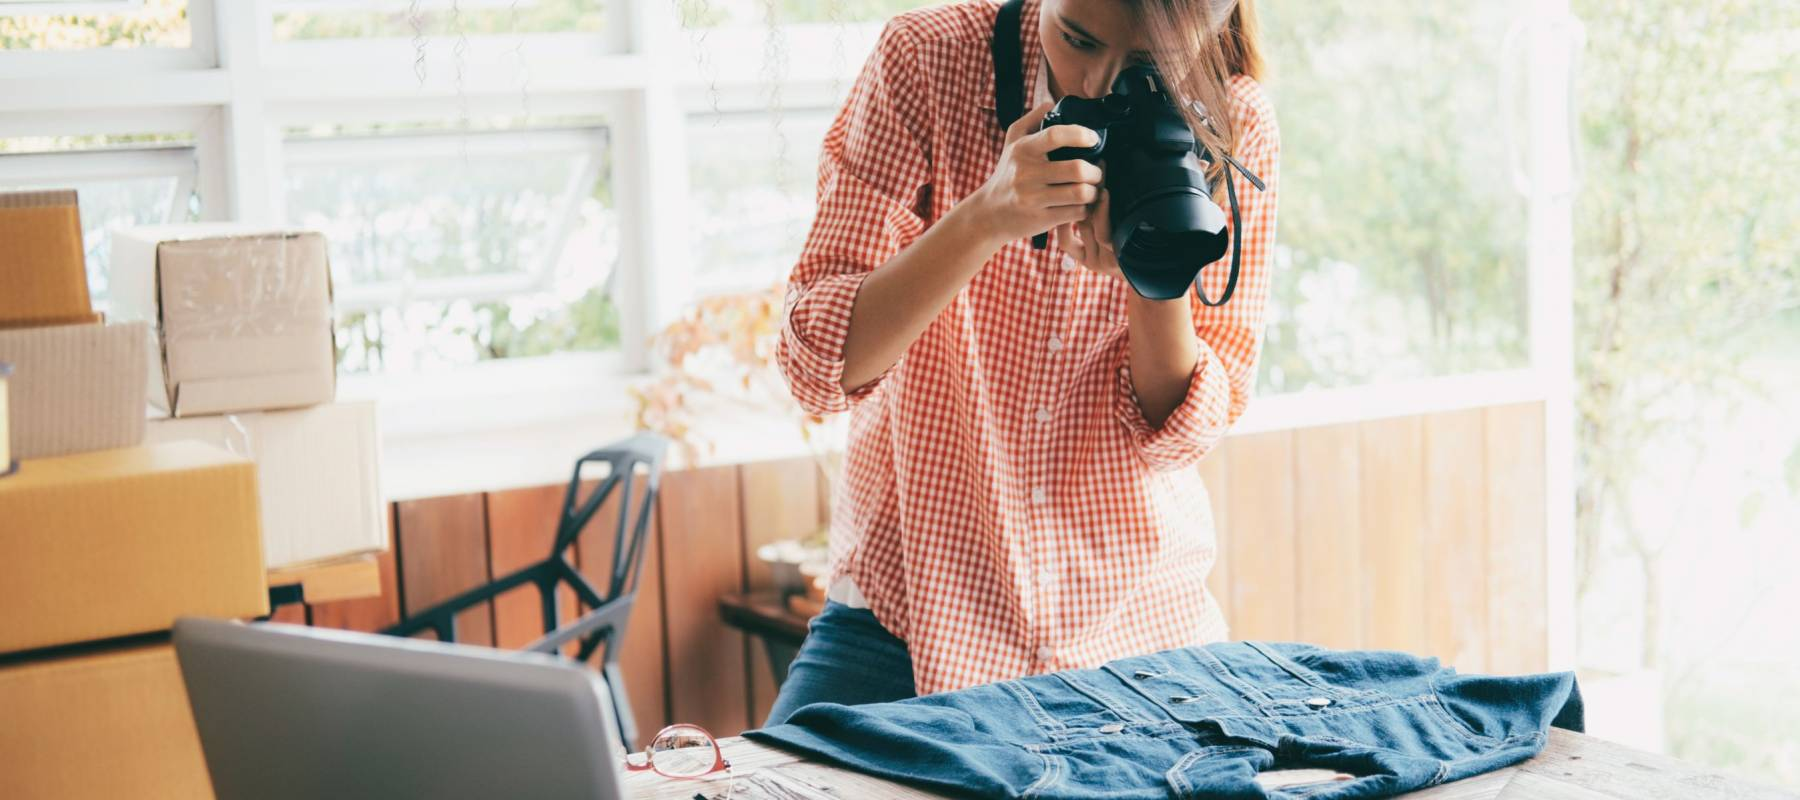 How to Sell on Craigslist — 11 Tips to Sell Your Stuff